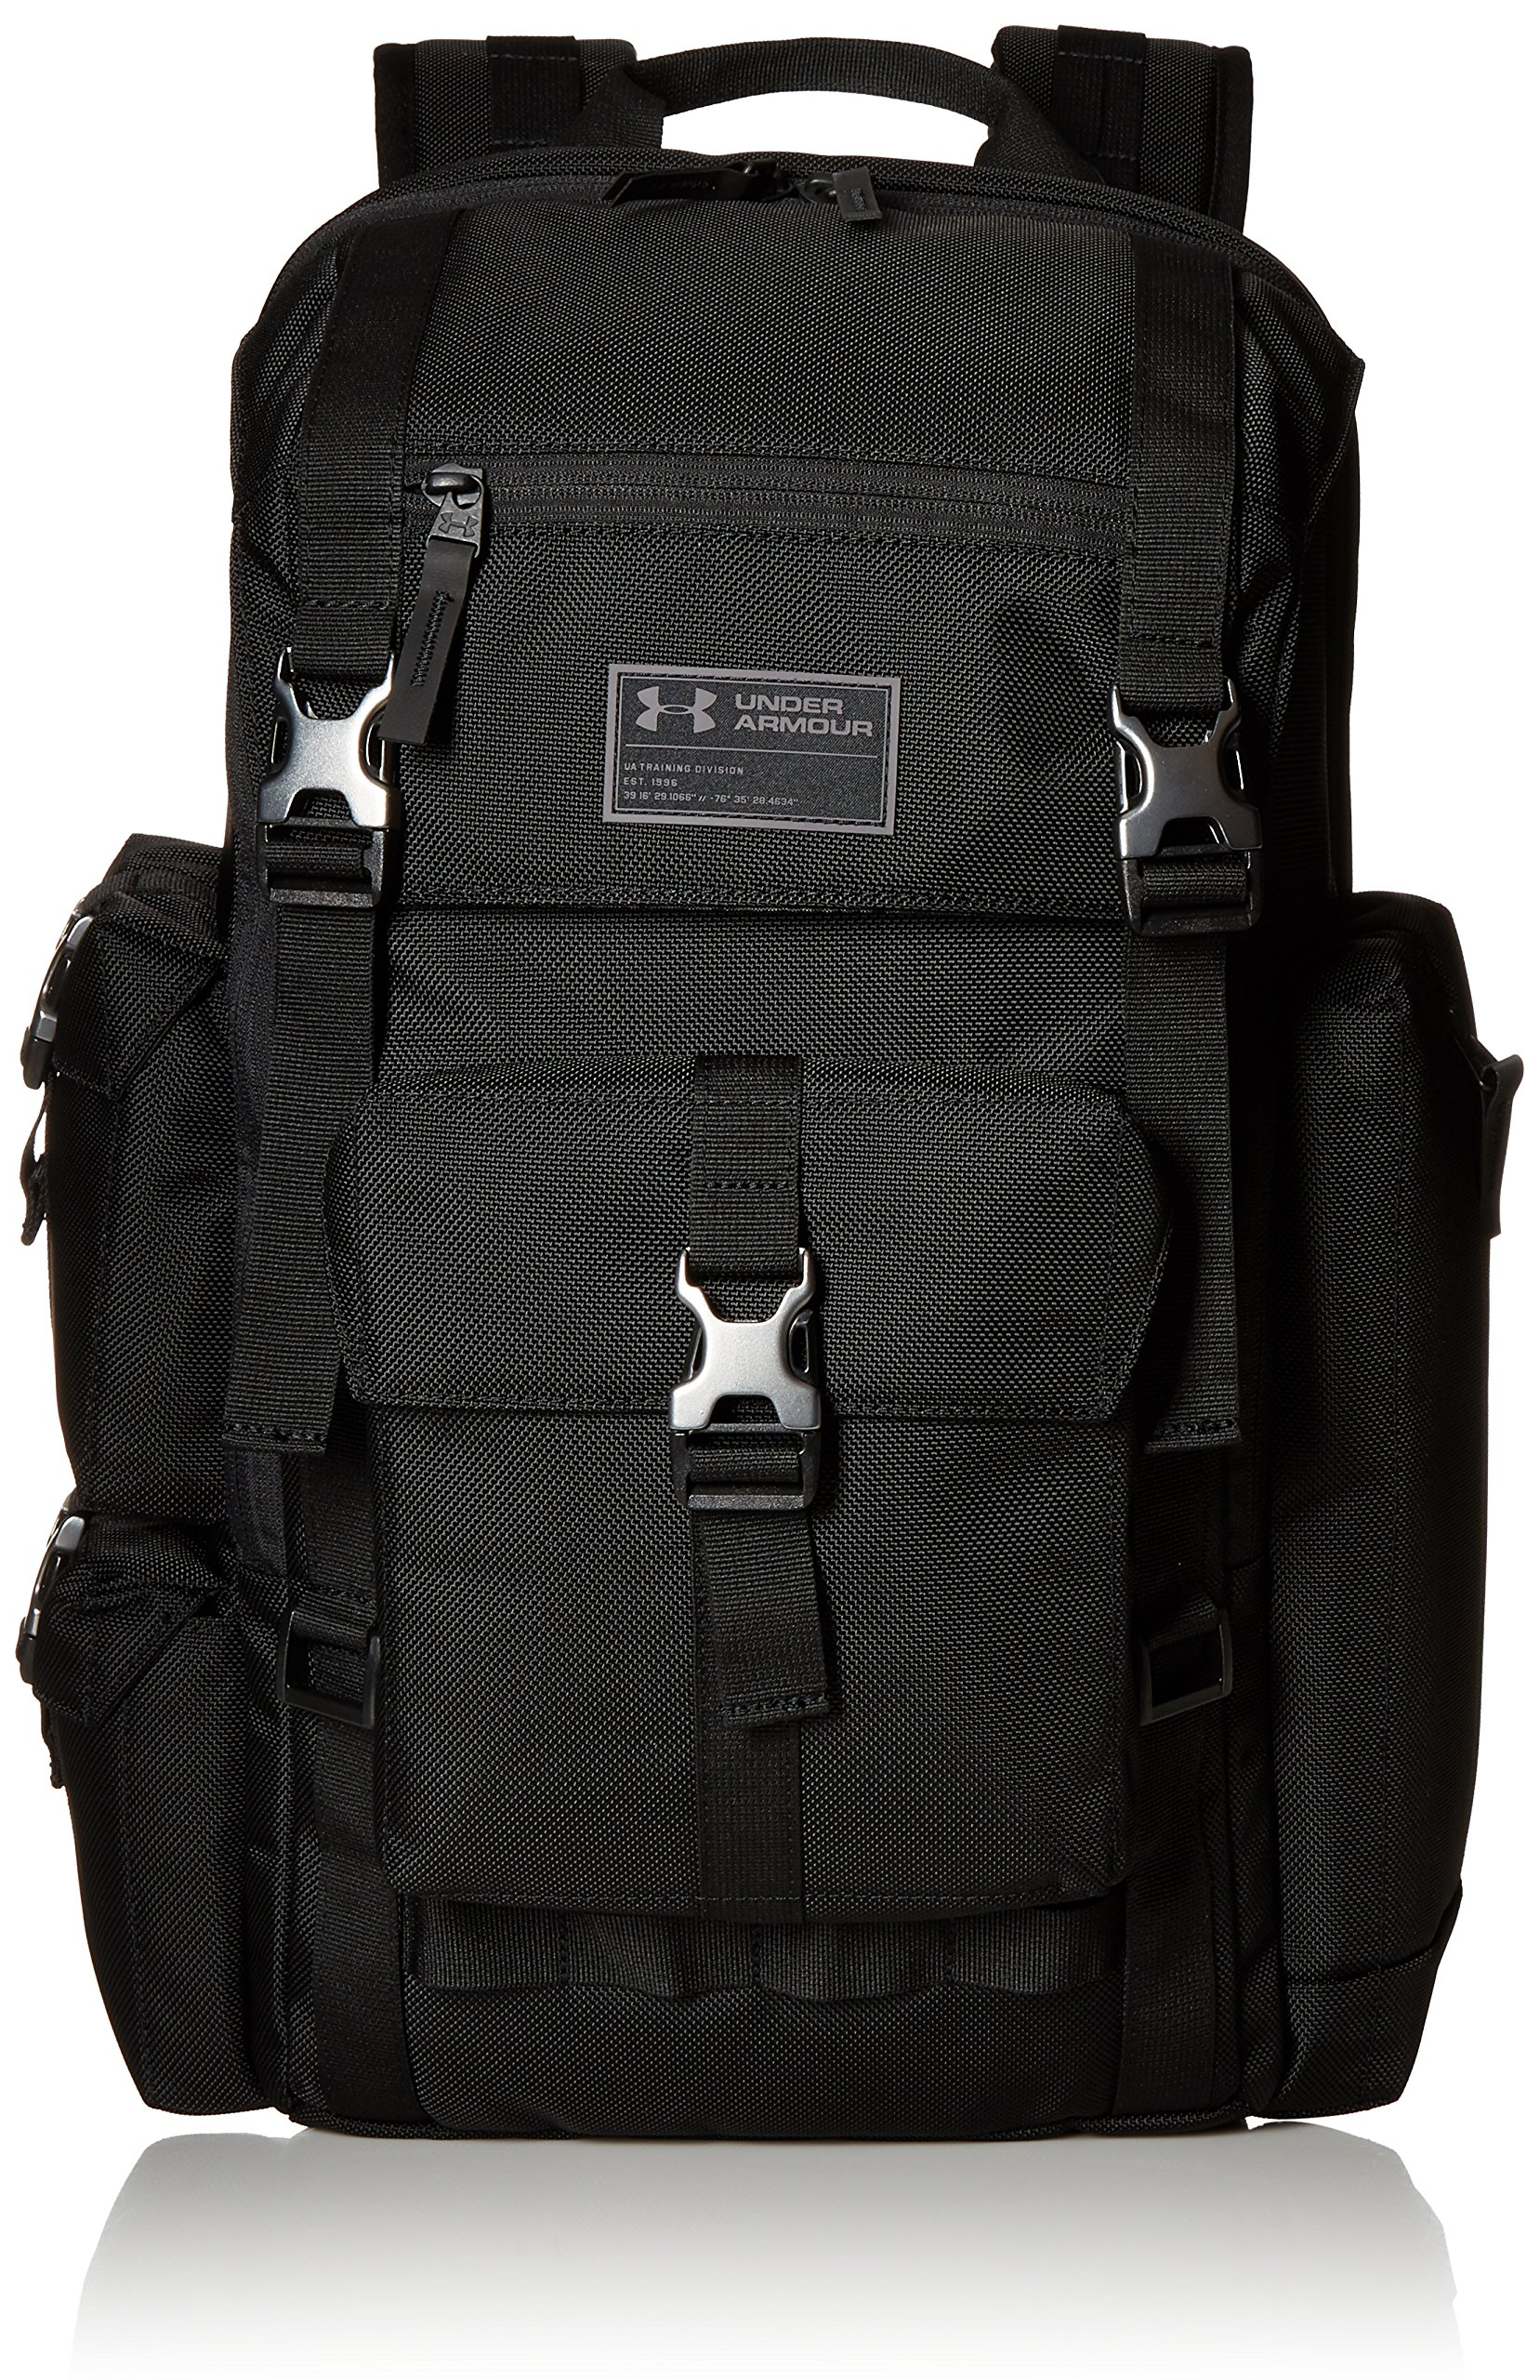 Under Armour Project Rock 60 Duffle Bag Back Pack Brand Black NWT.  94.99. Under  Armour CORDURA Regiment Backpack d50e91719c266